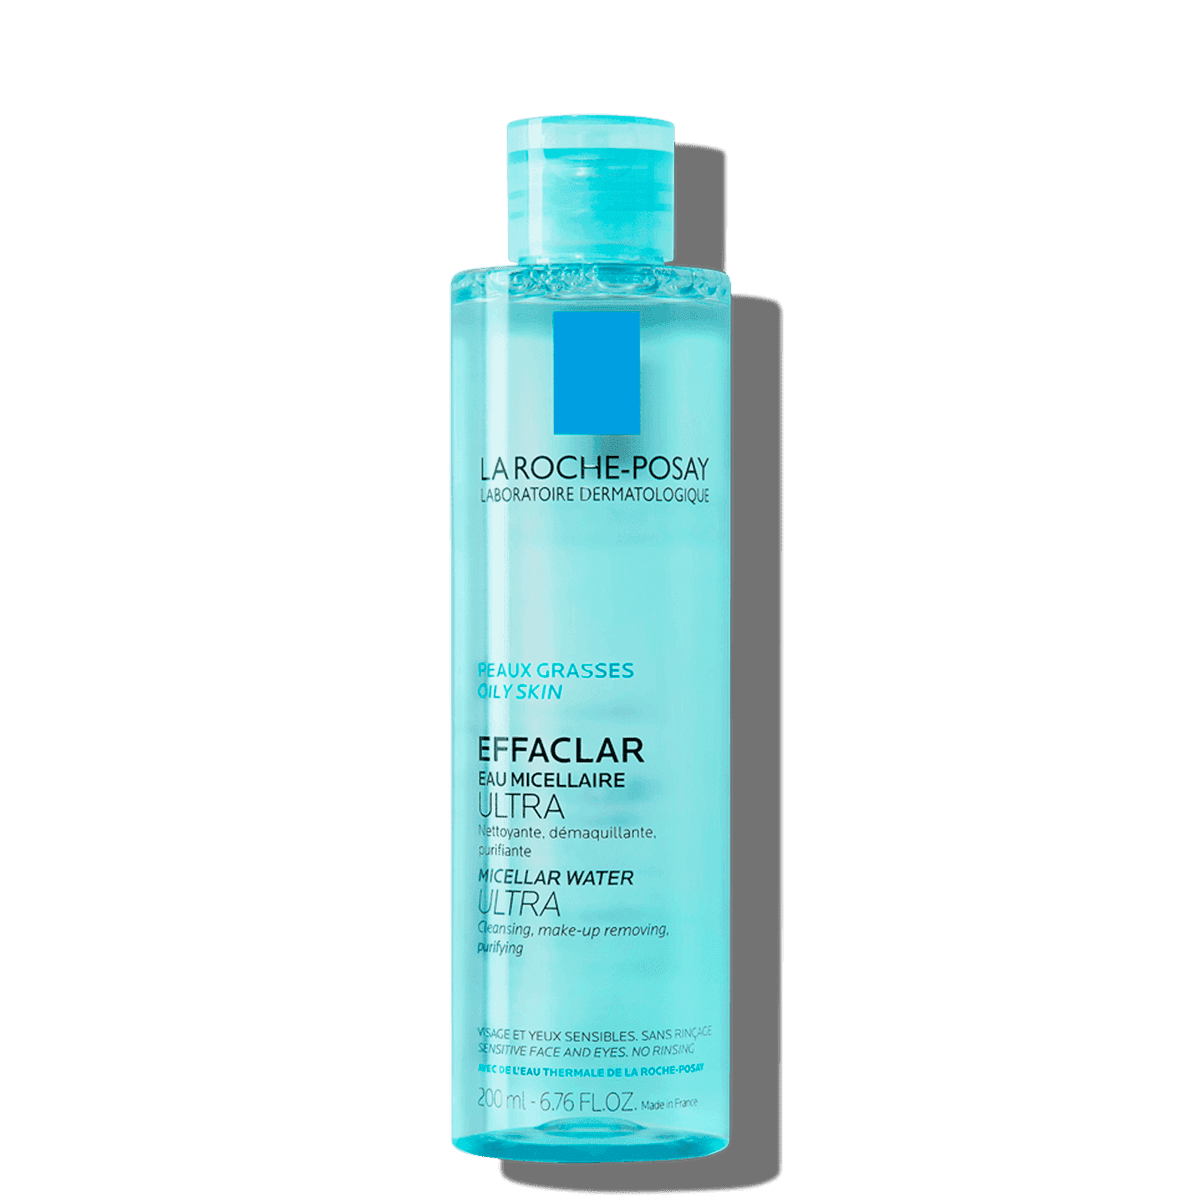 La Roche Posay Face Cleanser Effaclar Micellar Water Ultra 200ml 34334